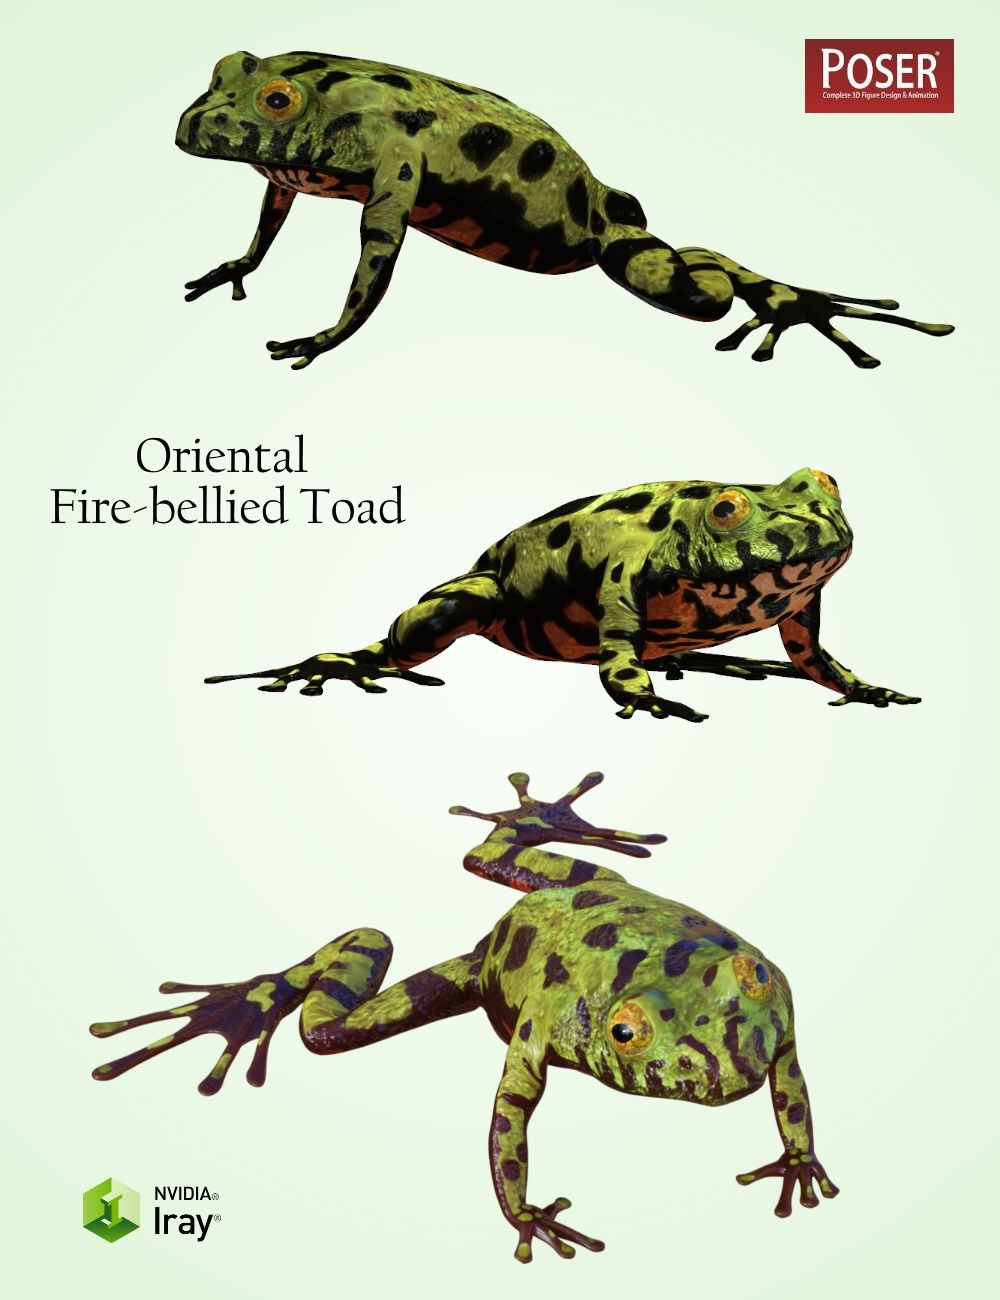 Are Frogs and Toads the Same?